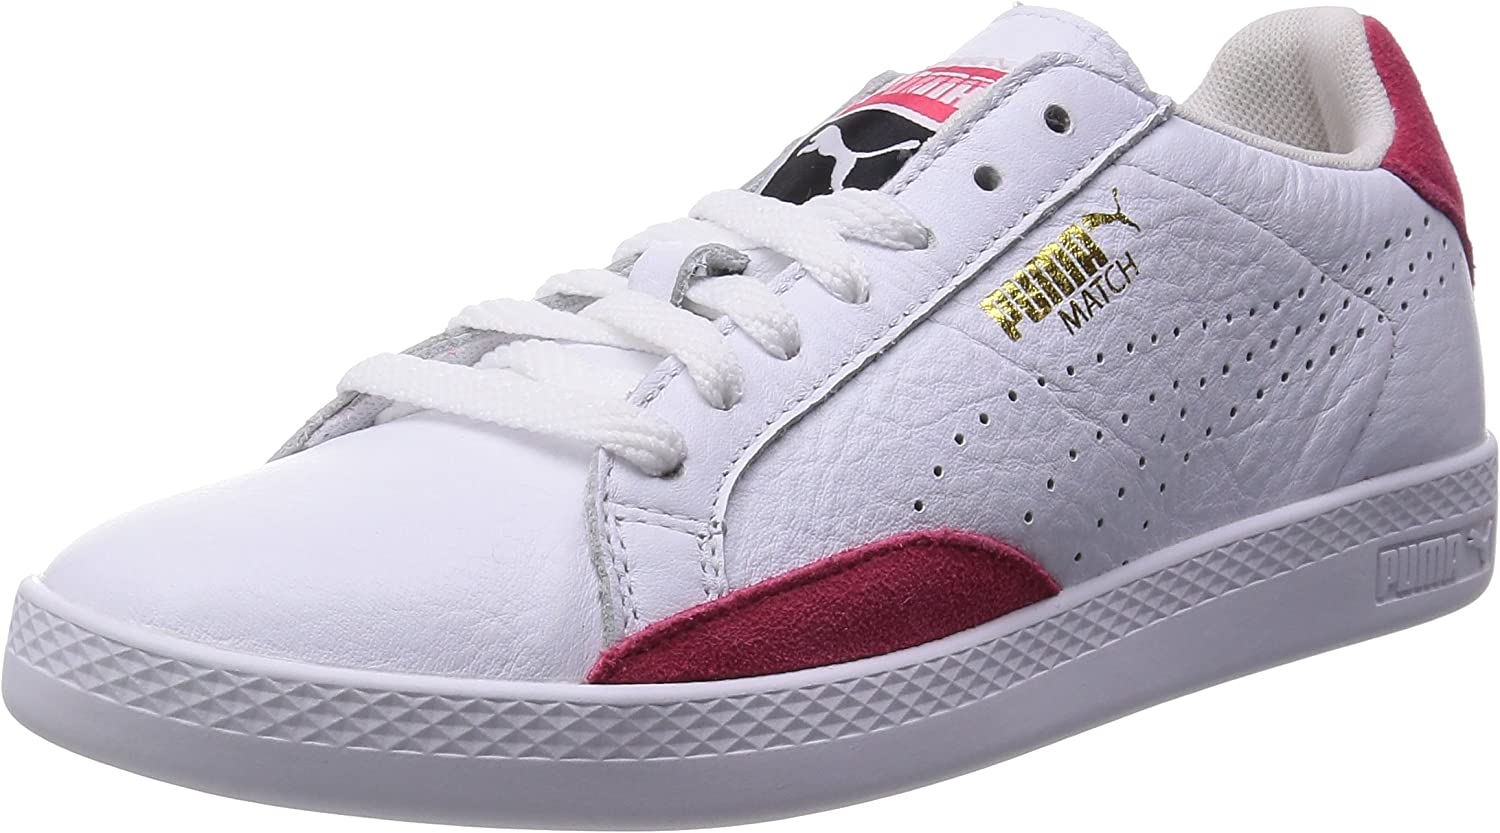 Puma Match Lo Basic Sports w 35754301, Baskets Mode Femme